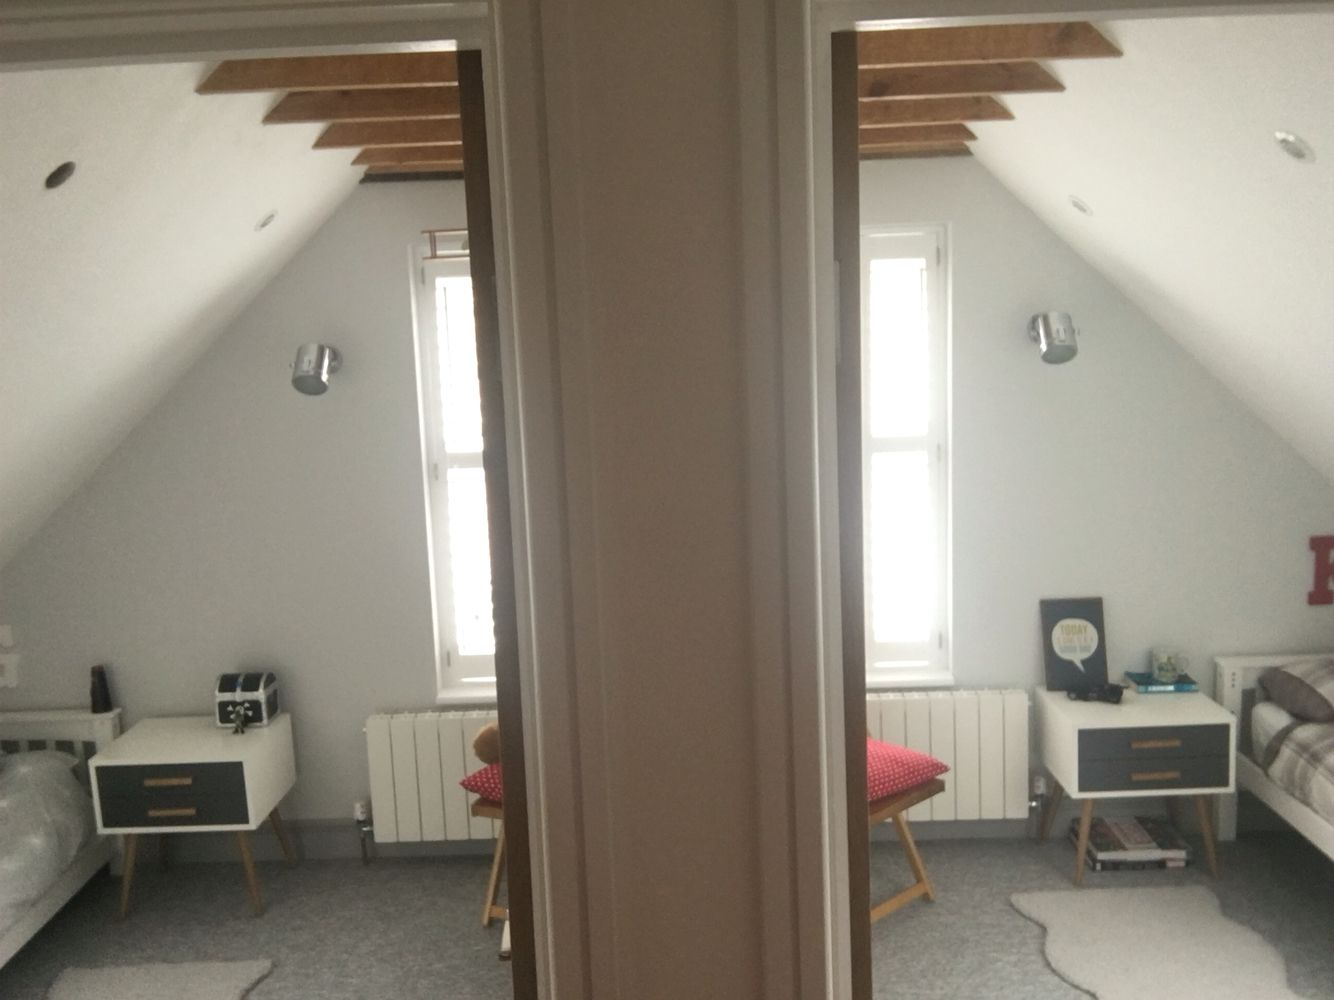 divided back eaves room in two. loft rooms, attic rooms, chalet